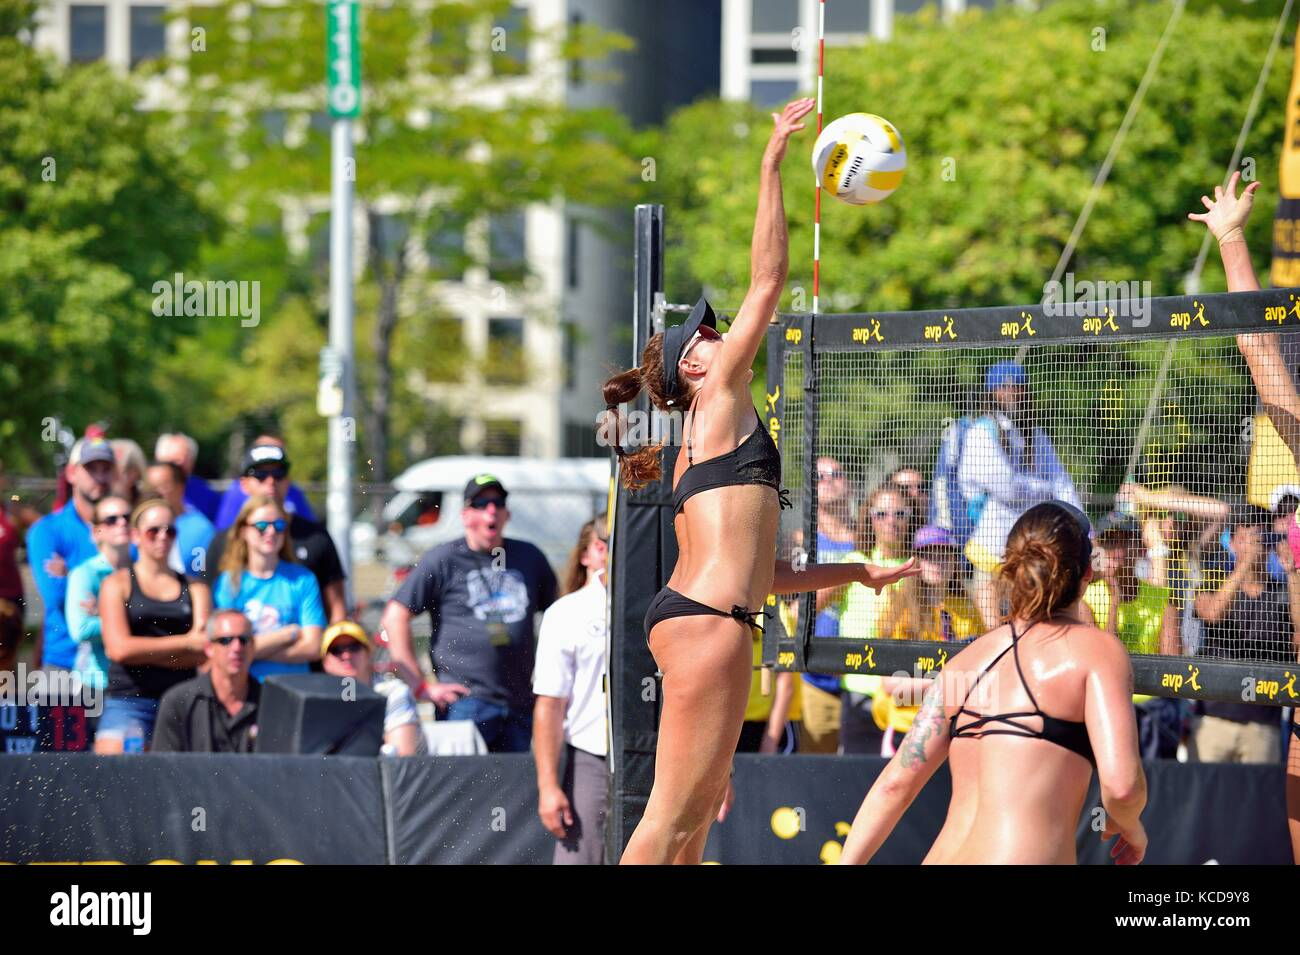 Player delivering a kill shot at the net during the quarter final action at the AVP 2017 Women's Chicago Championships - Stock Image